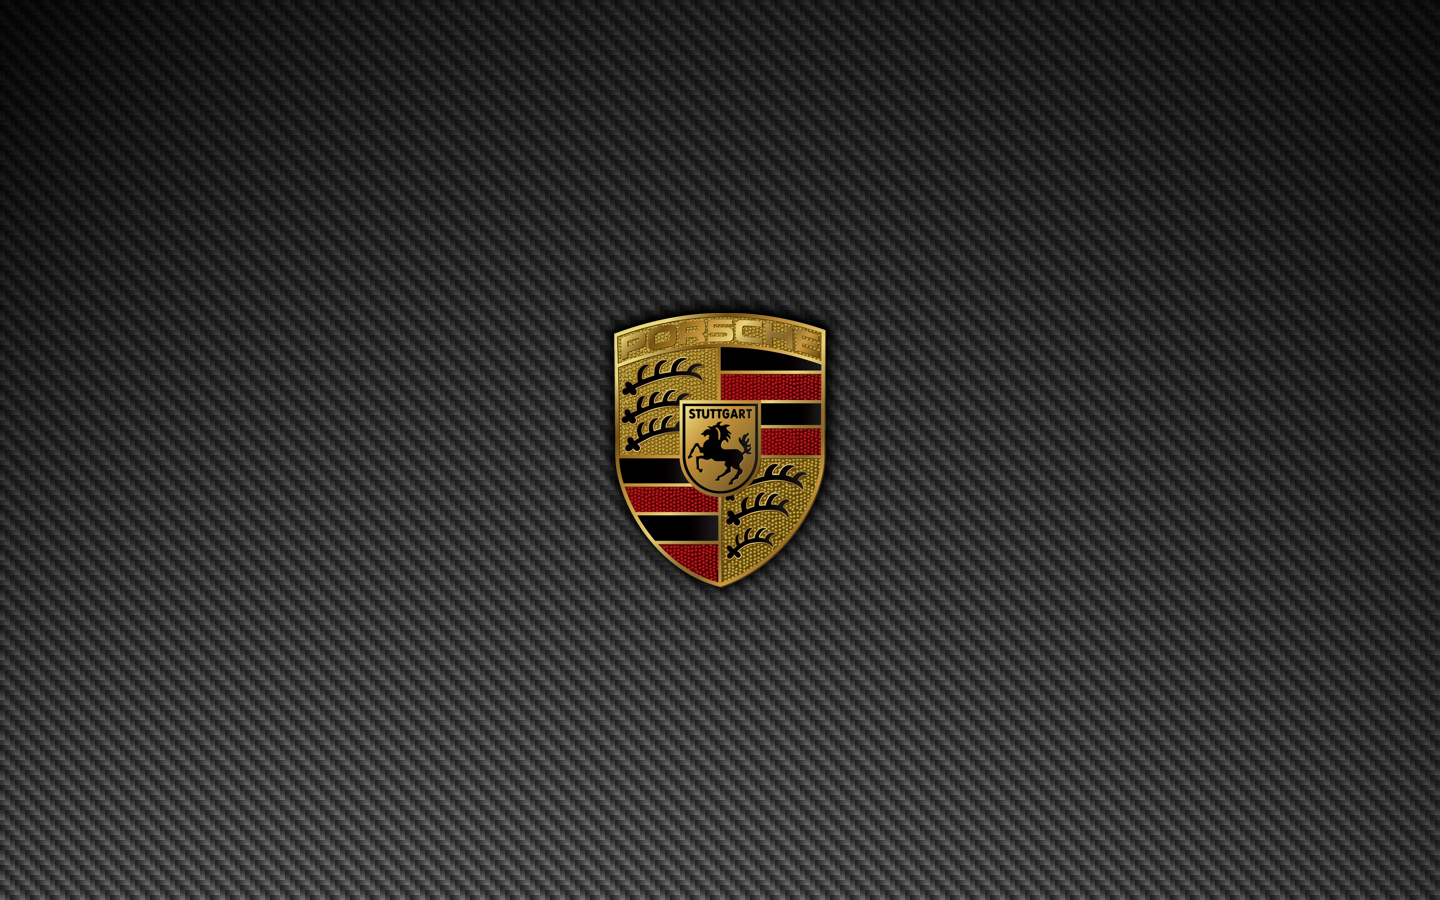 Carbon Fiber Porsche Wallpapers Myspace Picture to Pin on 1440x900